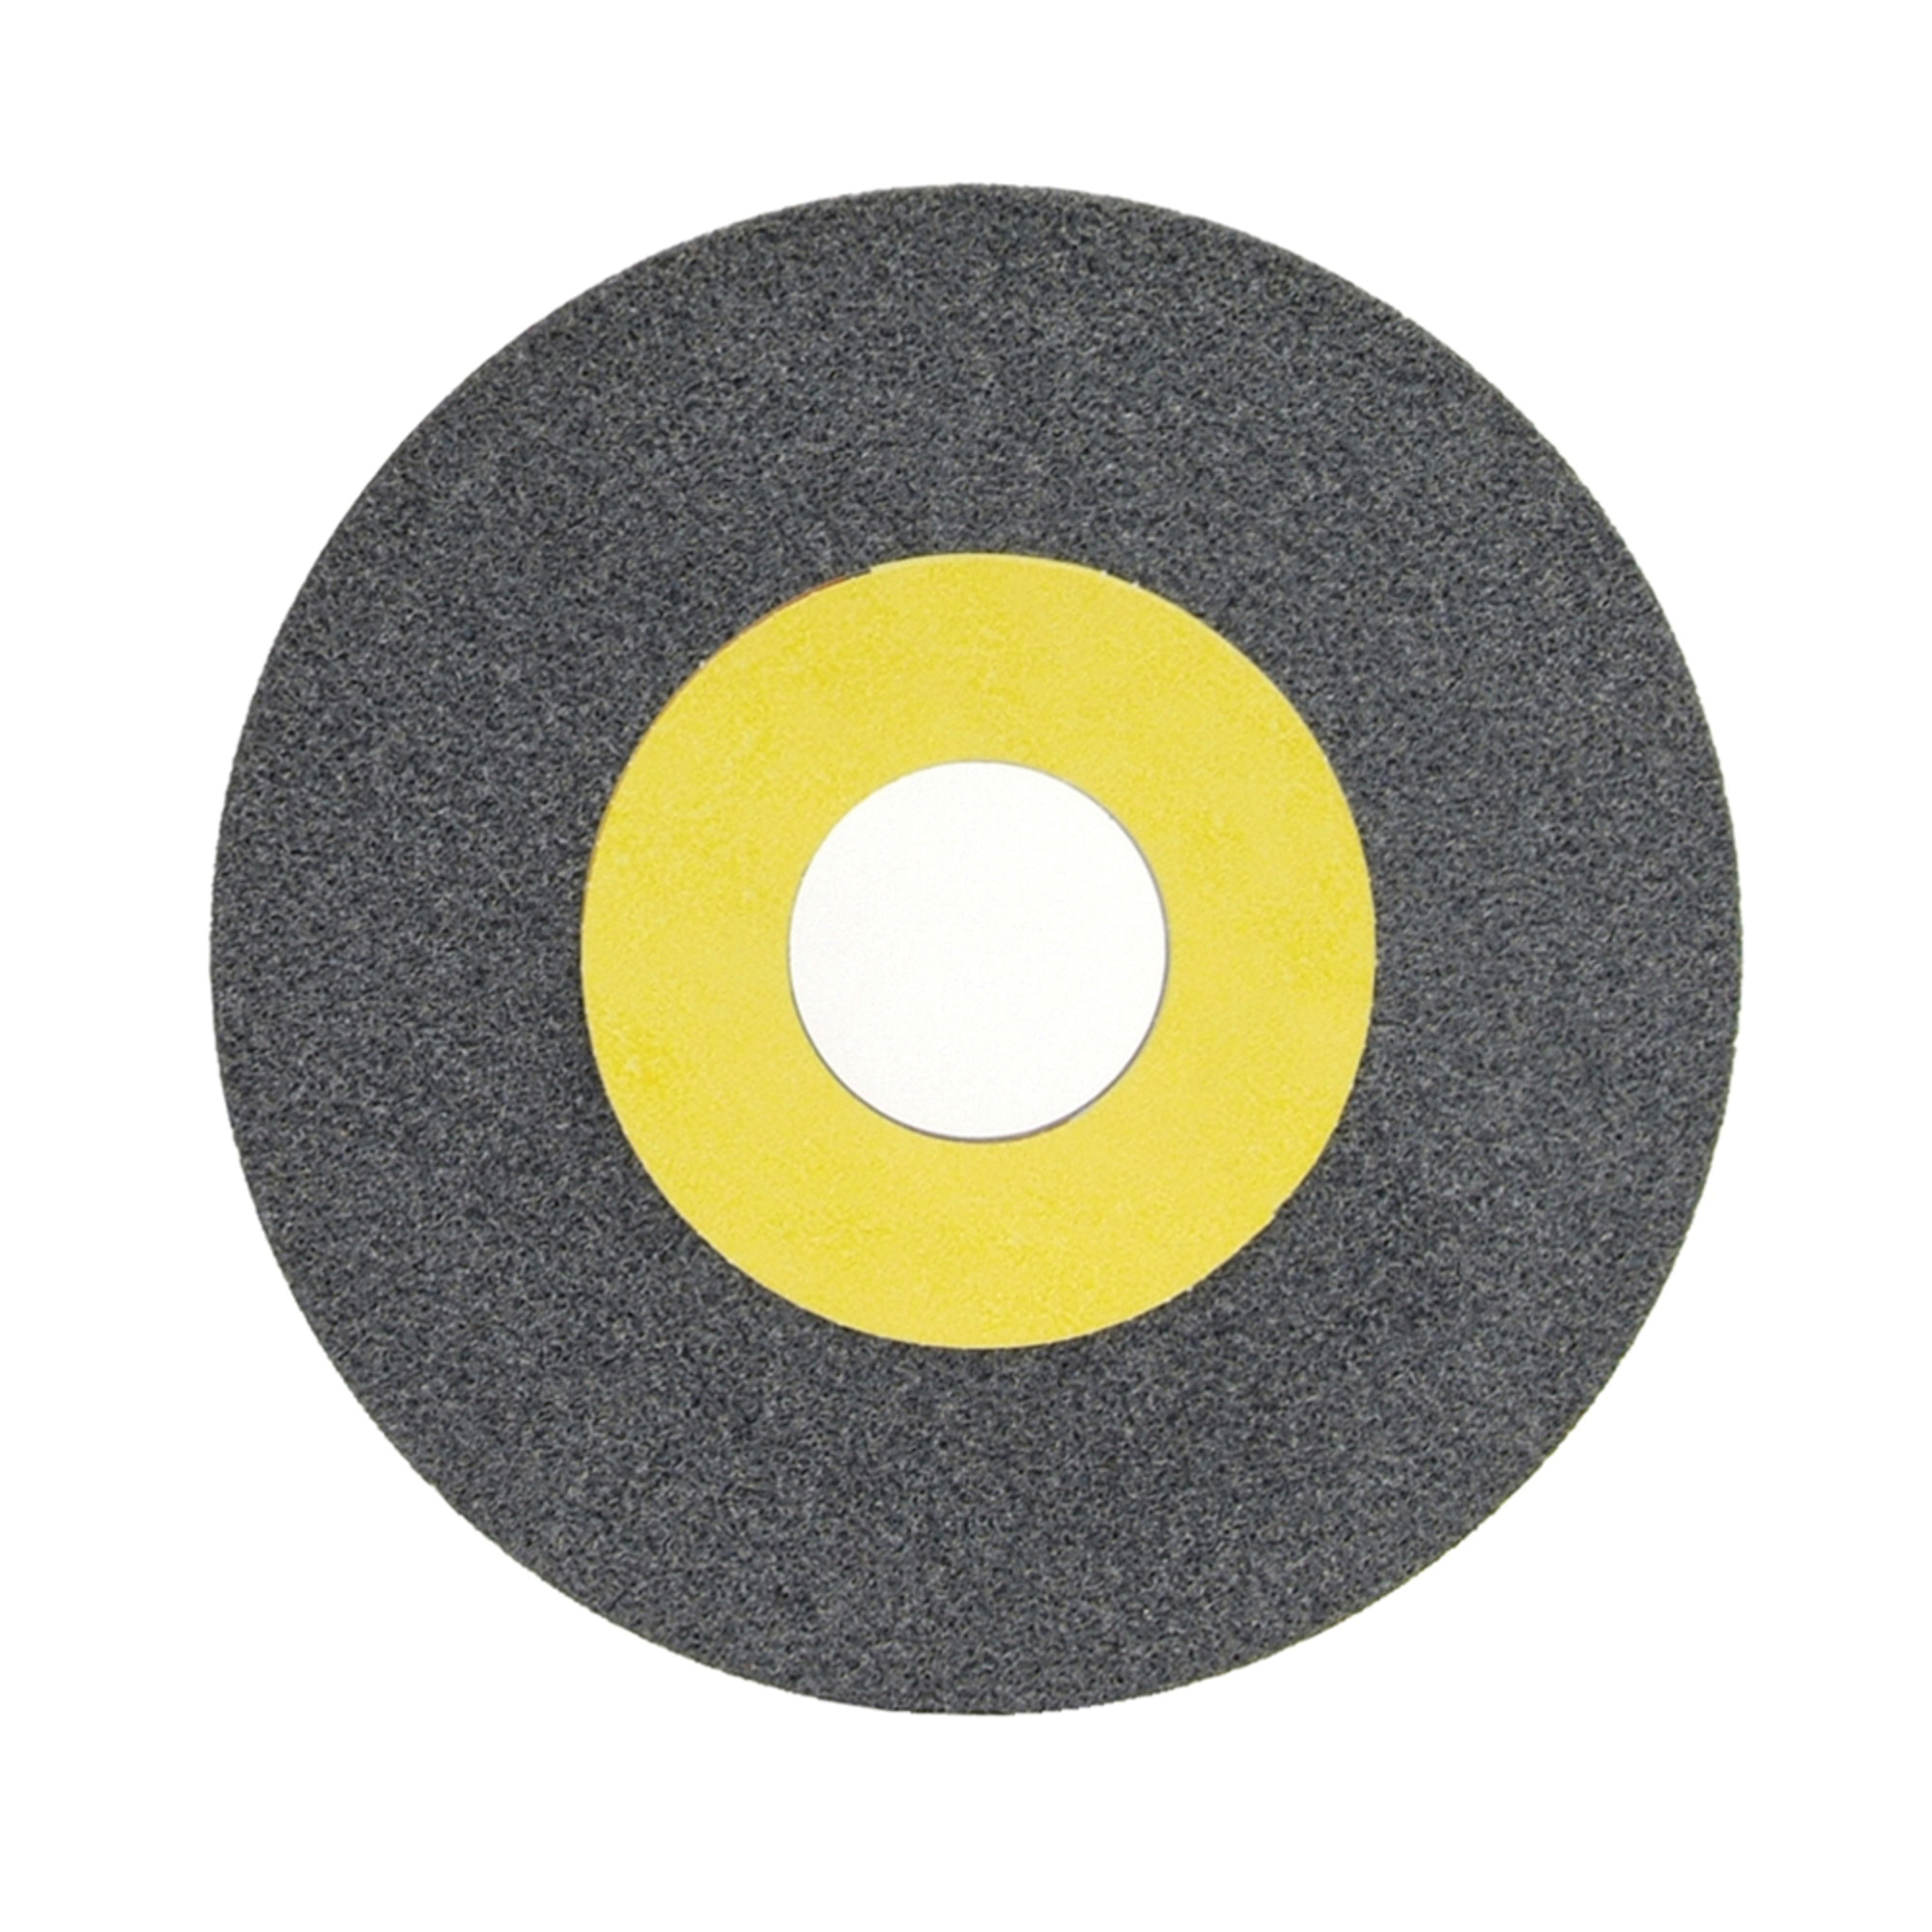 Norton® 66253263123 32A Straight Toolroom Wheel, 12 in Dia x 1-1/2 in THK, 3 in Center Hole, 60 Grit, Aluminum Oxide Abrasive